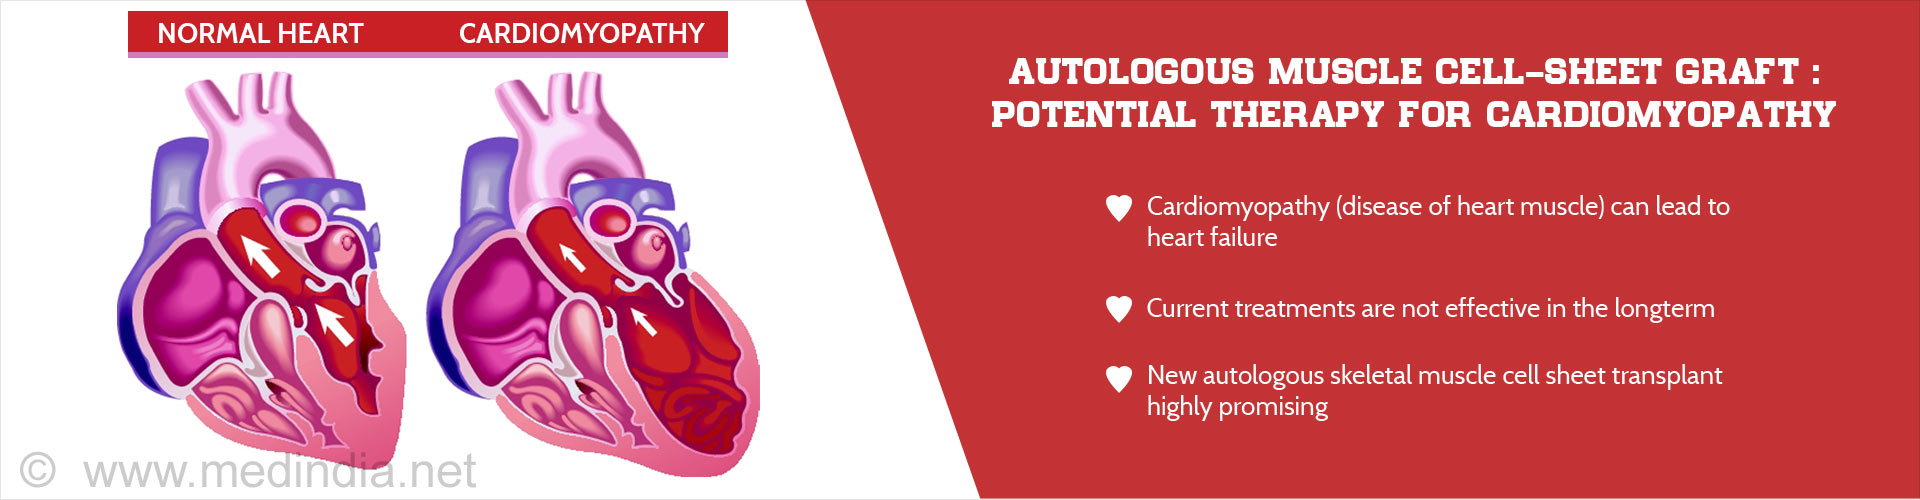 Autologous muscle cell-sheet graft: potential therapy for cardiomyopathy